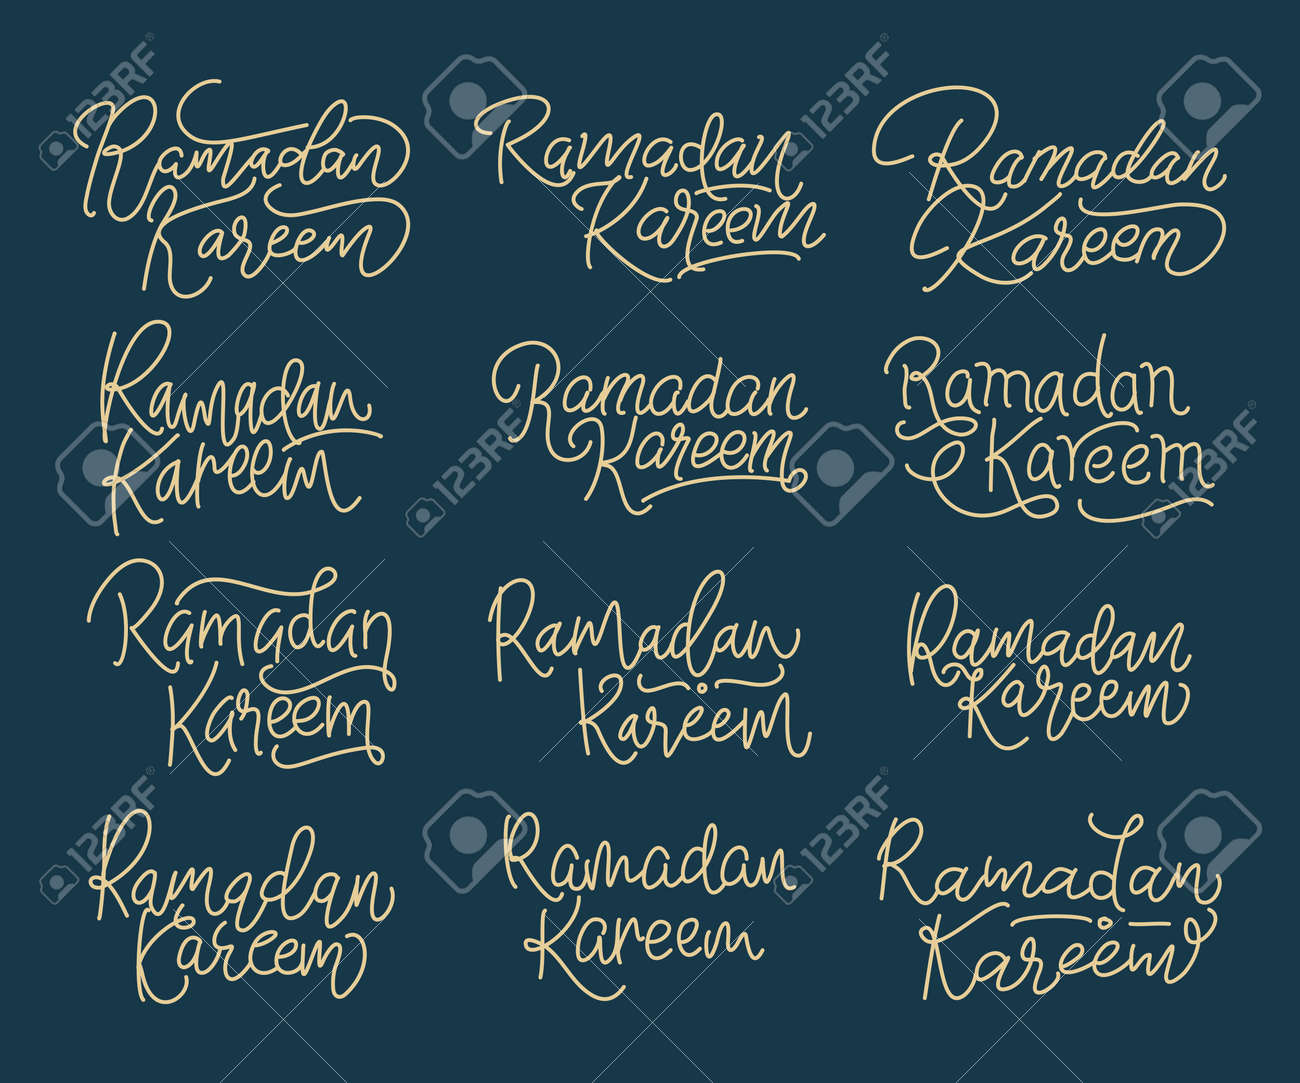 Collection of Ramadan Kareem modern calligraphy isolated on white background. Handwritten lettering. Hand drawn vector design elements. Muslim holy month. - 167718285